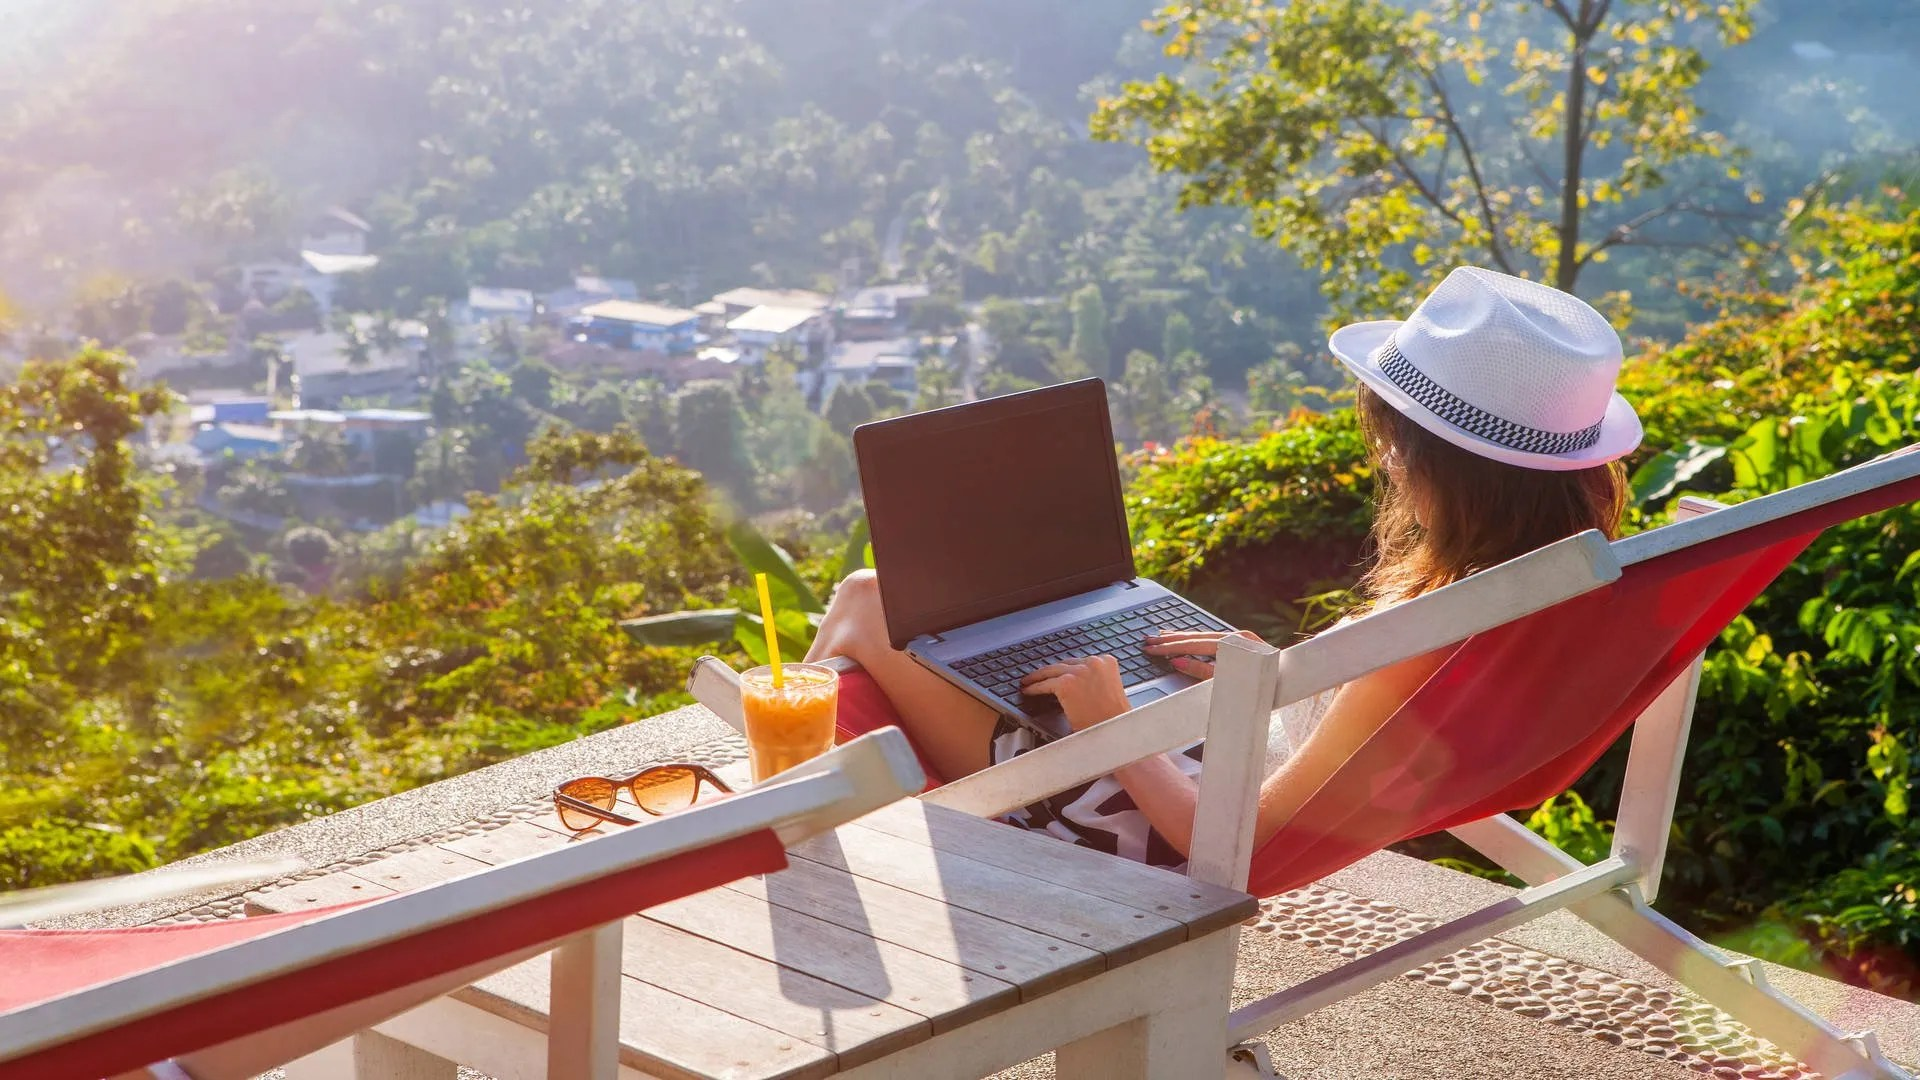 Make it work: 6 golden work rules for digital nomads